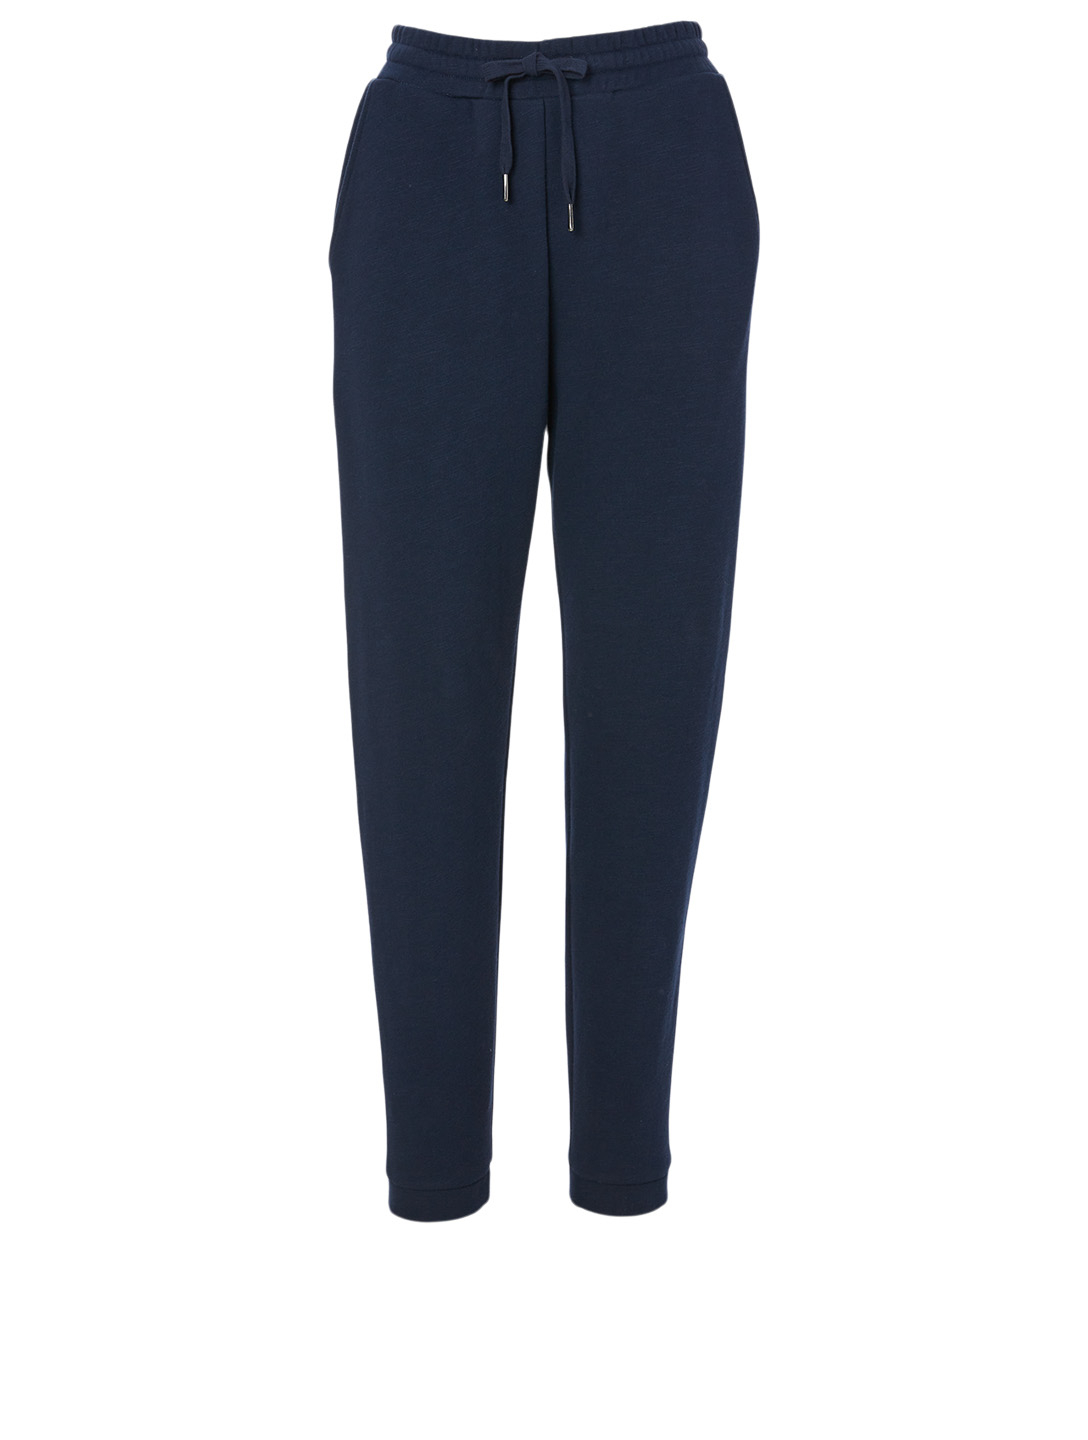 SWEATY BETTY Pantalon Essentials en molleton de coton Femmes Bleu